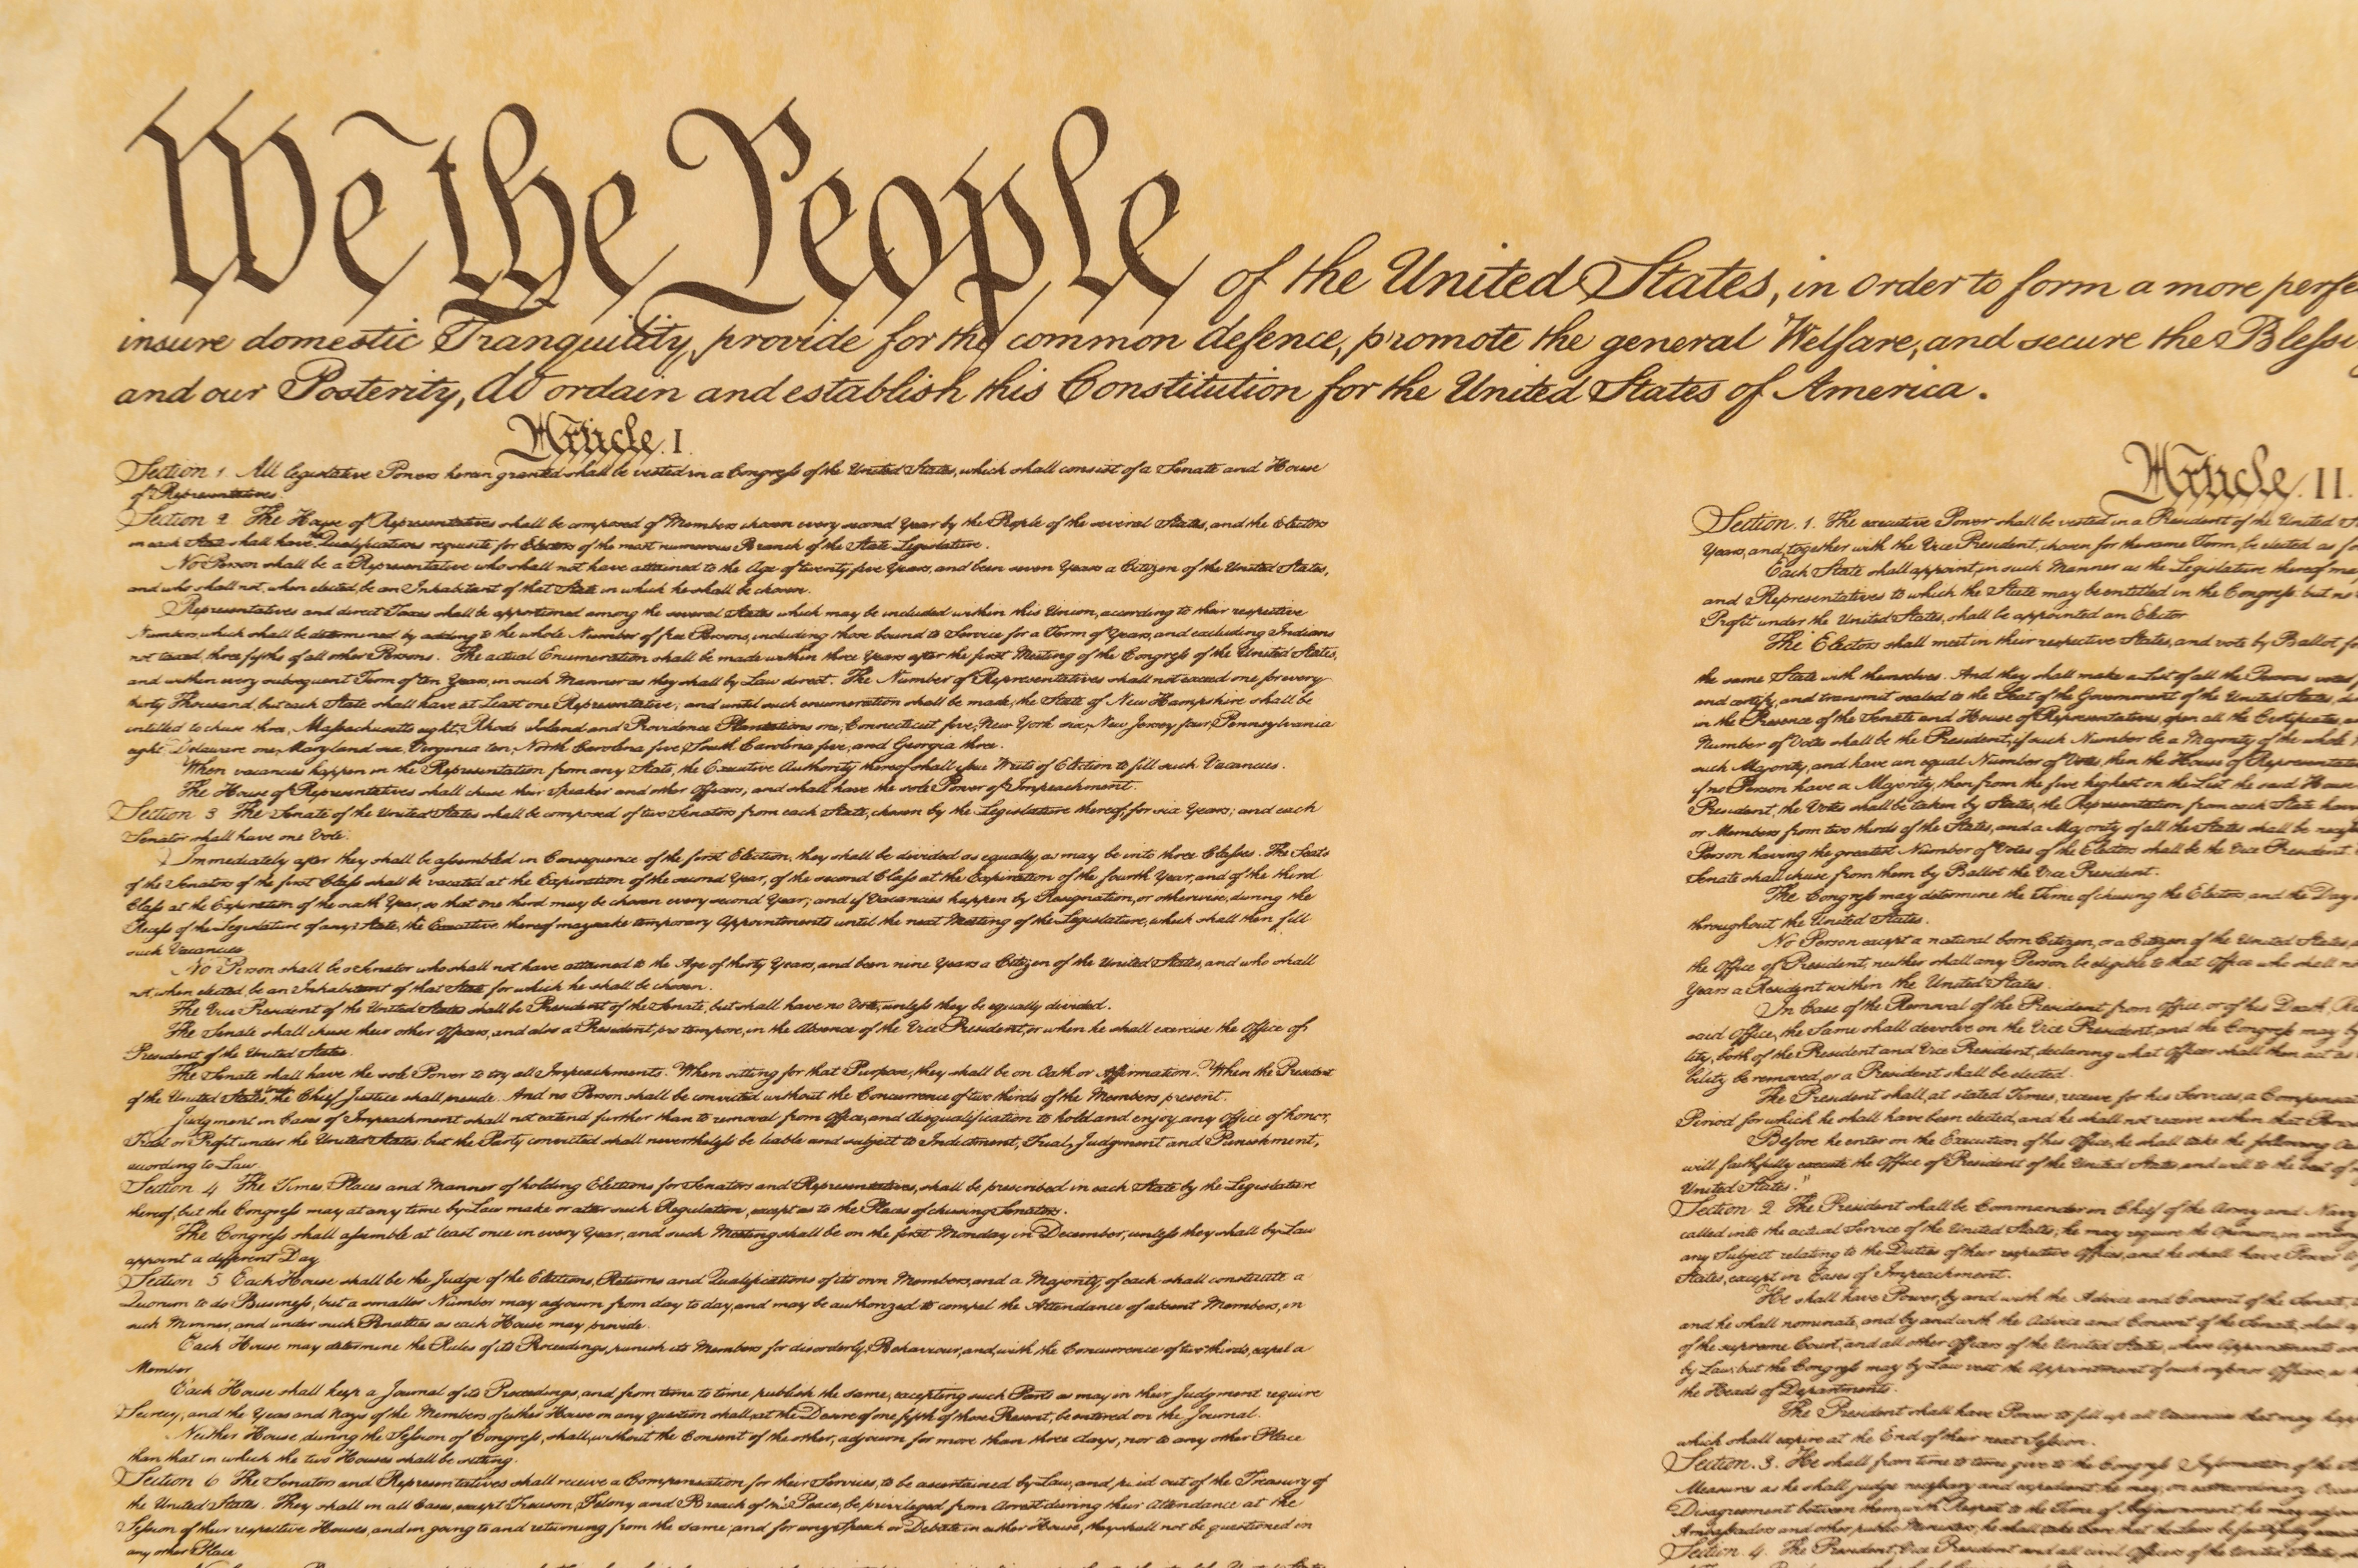 Opening preamble of the United States of America Constitution with a front view